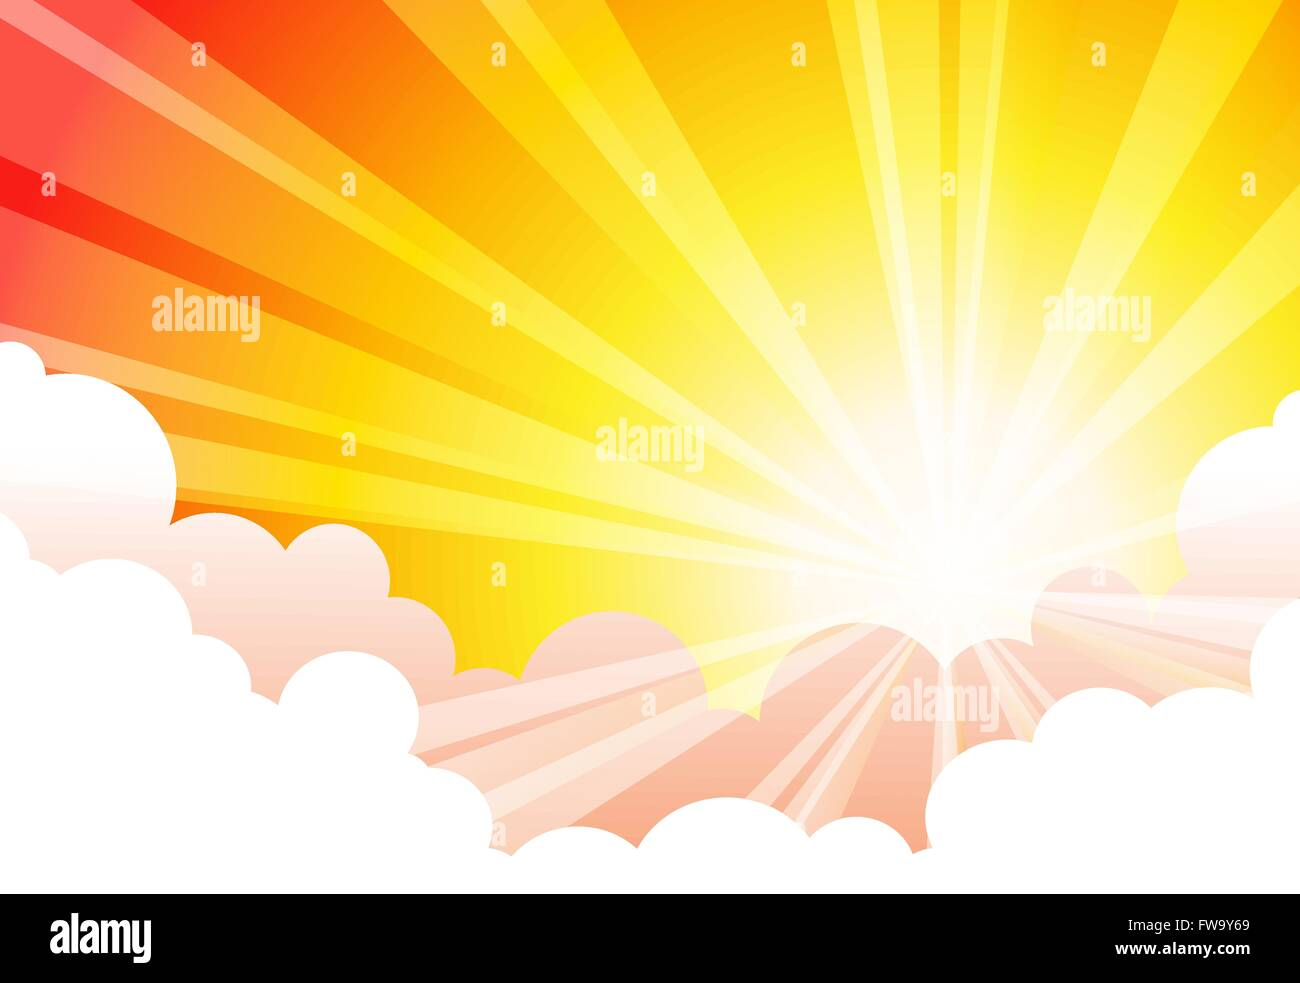 Sky Sun Cloud Vectors - Stock Image